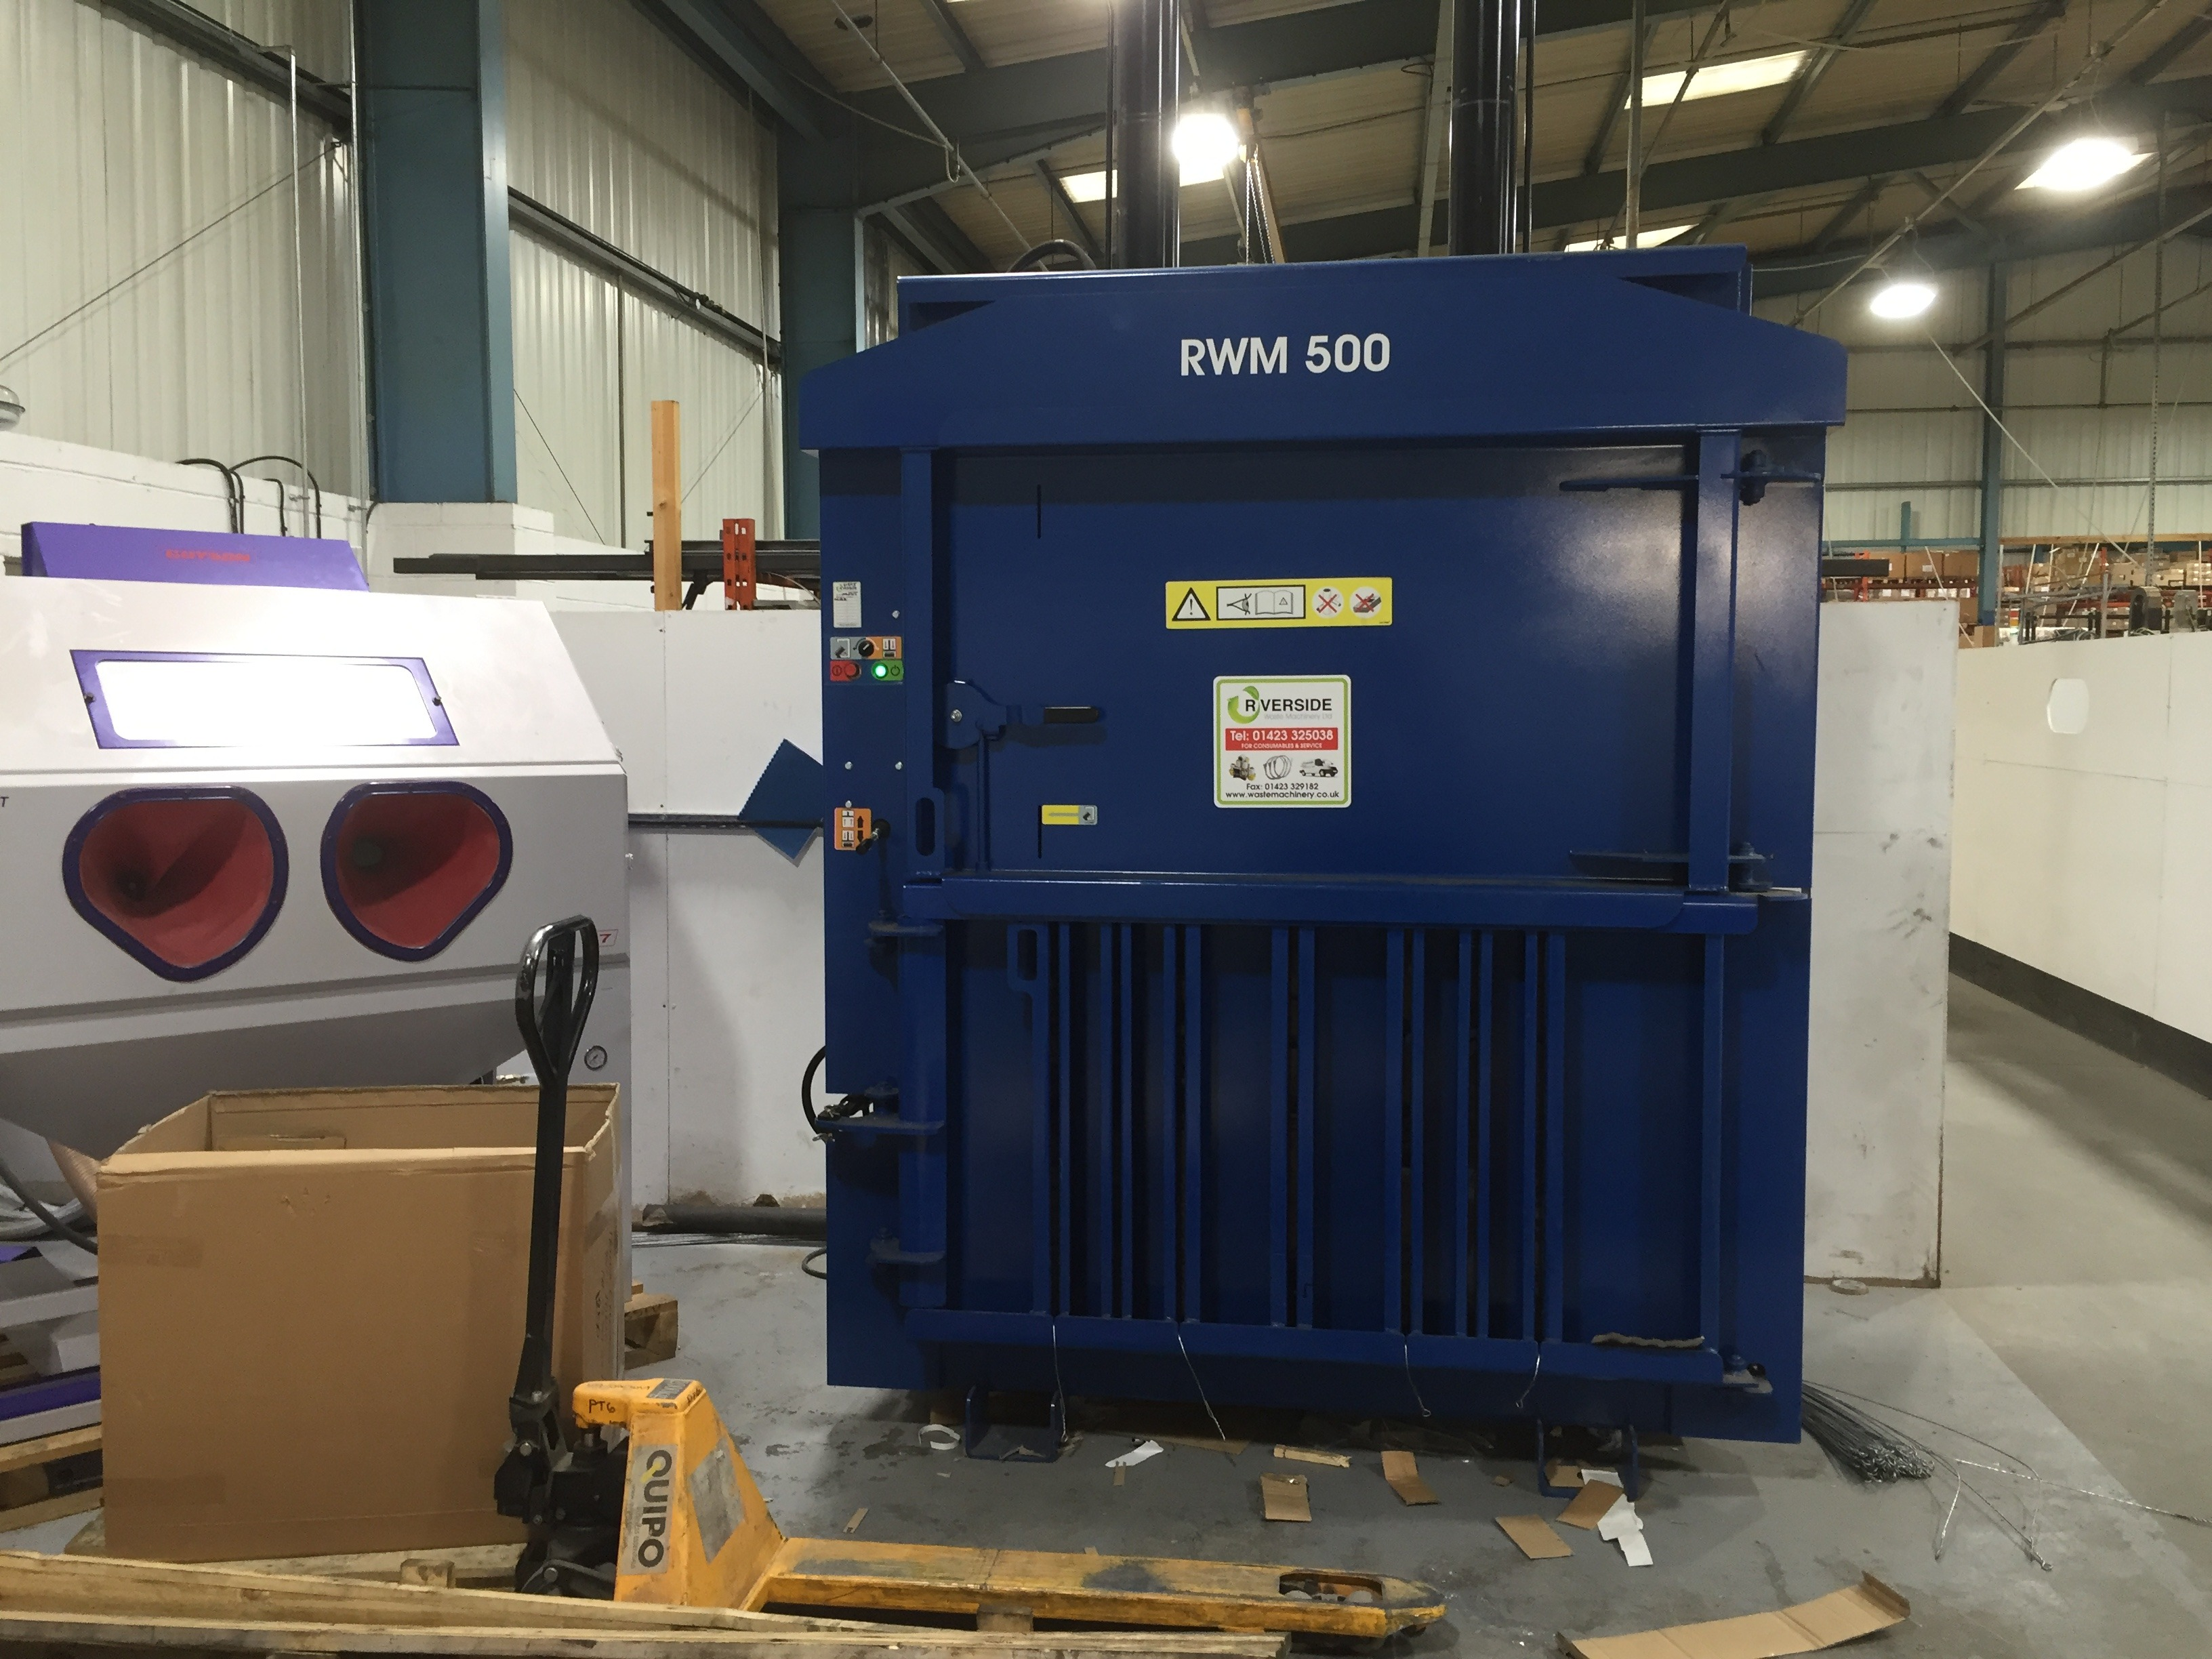 Motor manufacturer boosts recycling agenda with Riverside waste baler